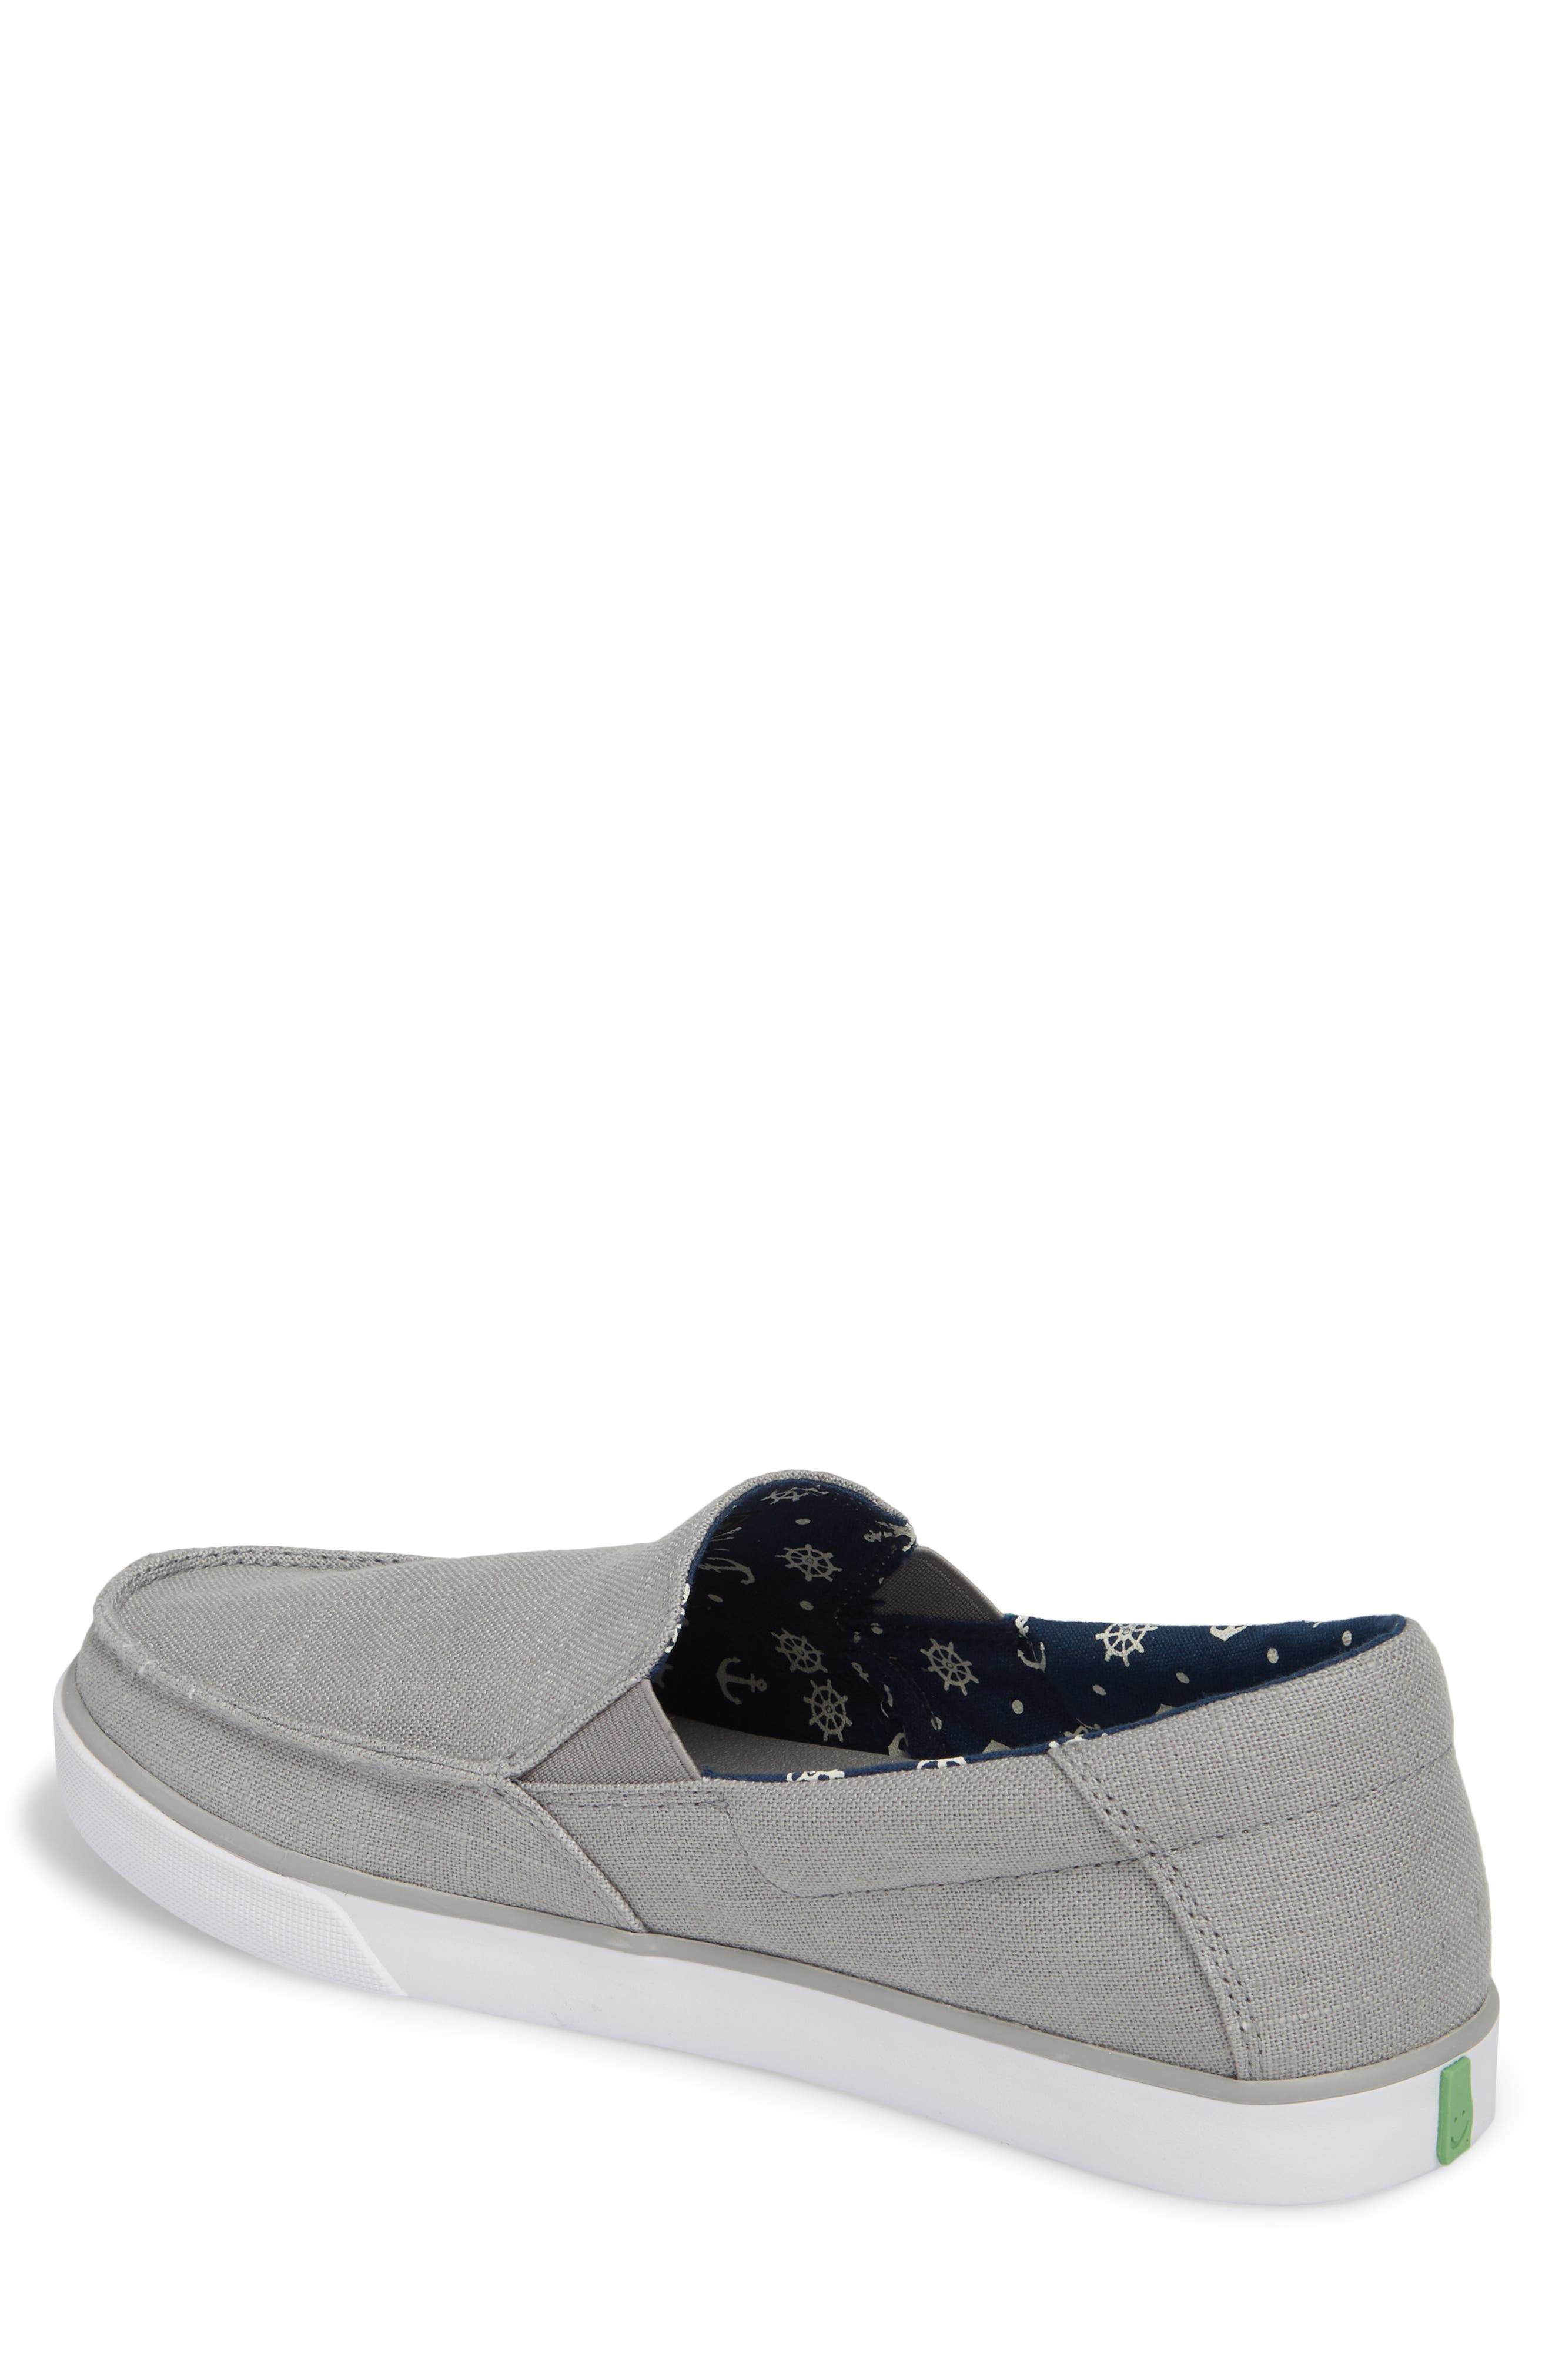 Sideline Linen Slip-On,                             Alternate thumbnail 2, color,                             Grey